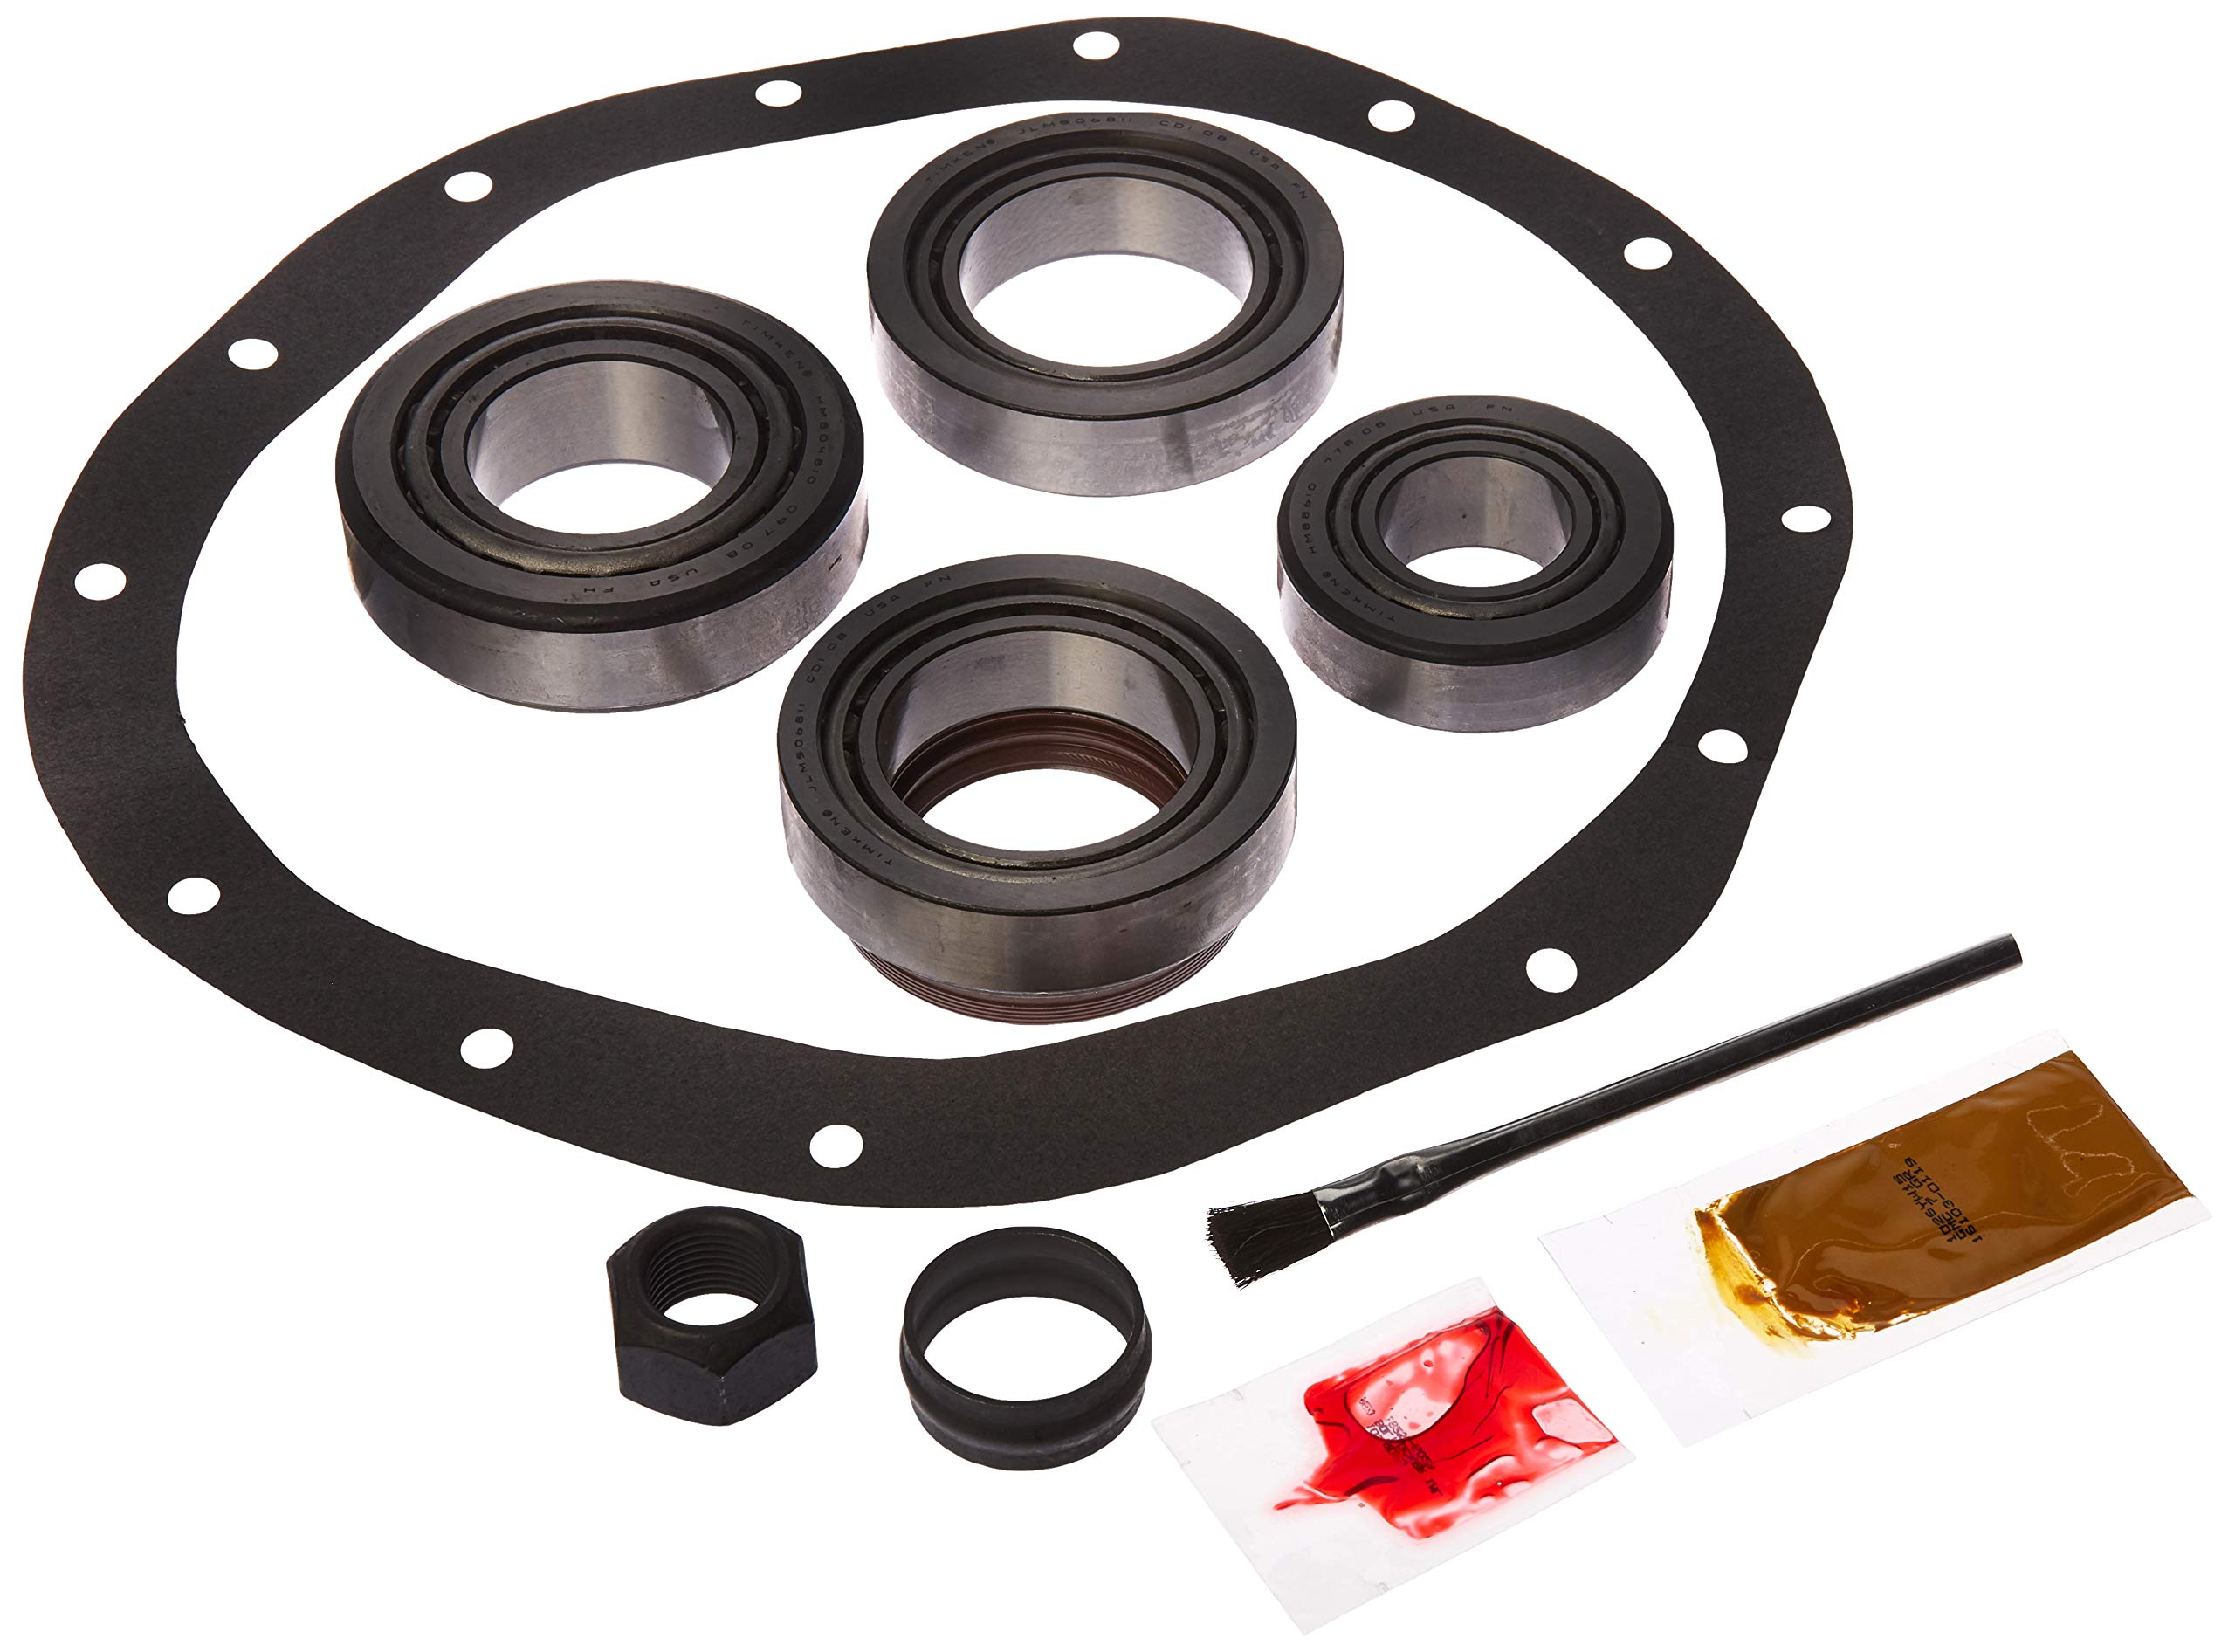 Motive Gear R9 5GRLPK Light Duty Koyo Bearing Kit (PBK GM 9 5'' '98-'14  14BT), 1 Pack